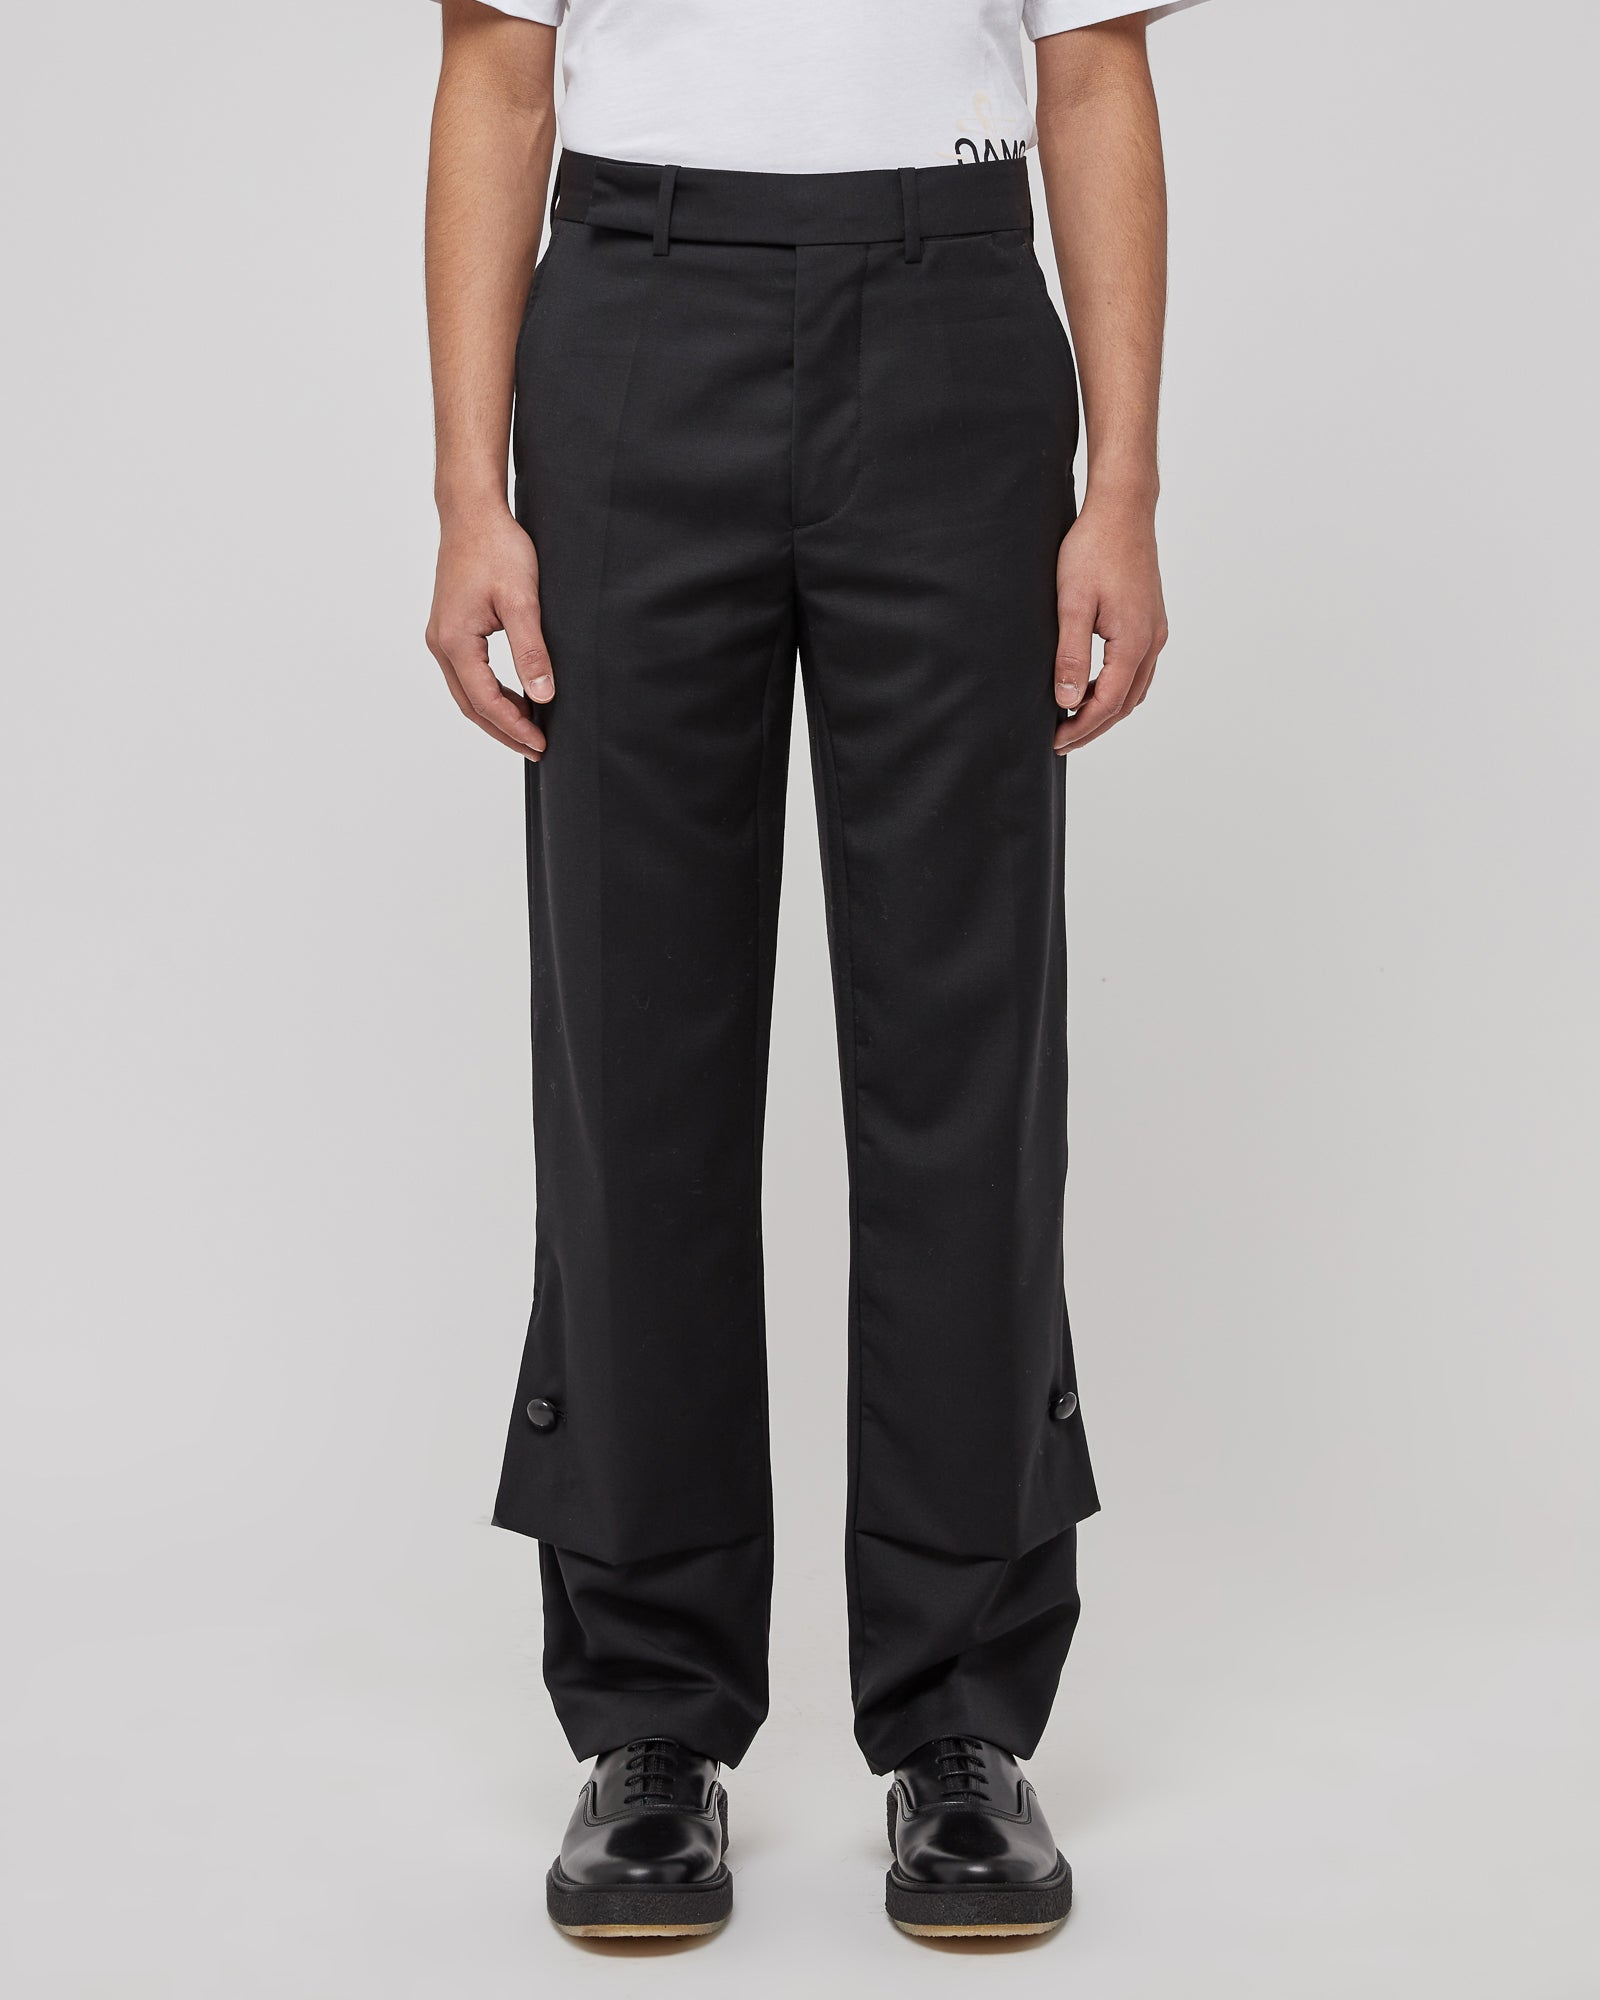 Hirse Flap Trousers in Black